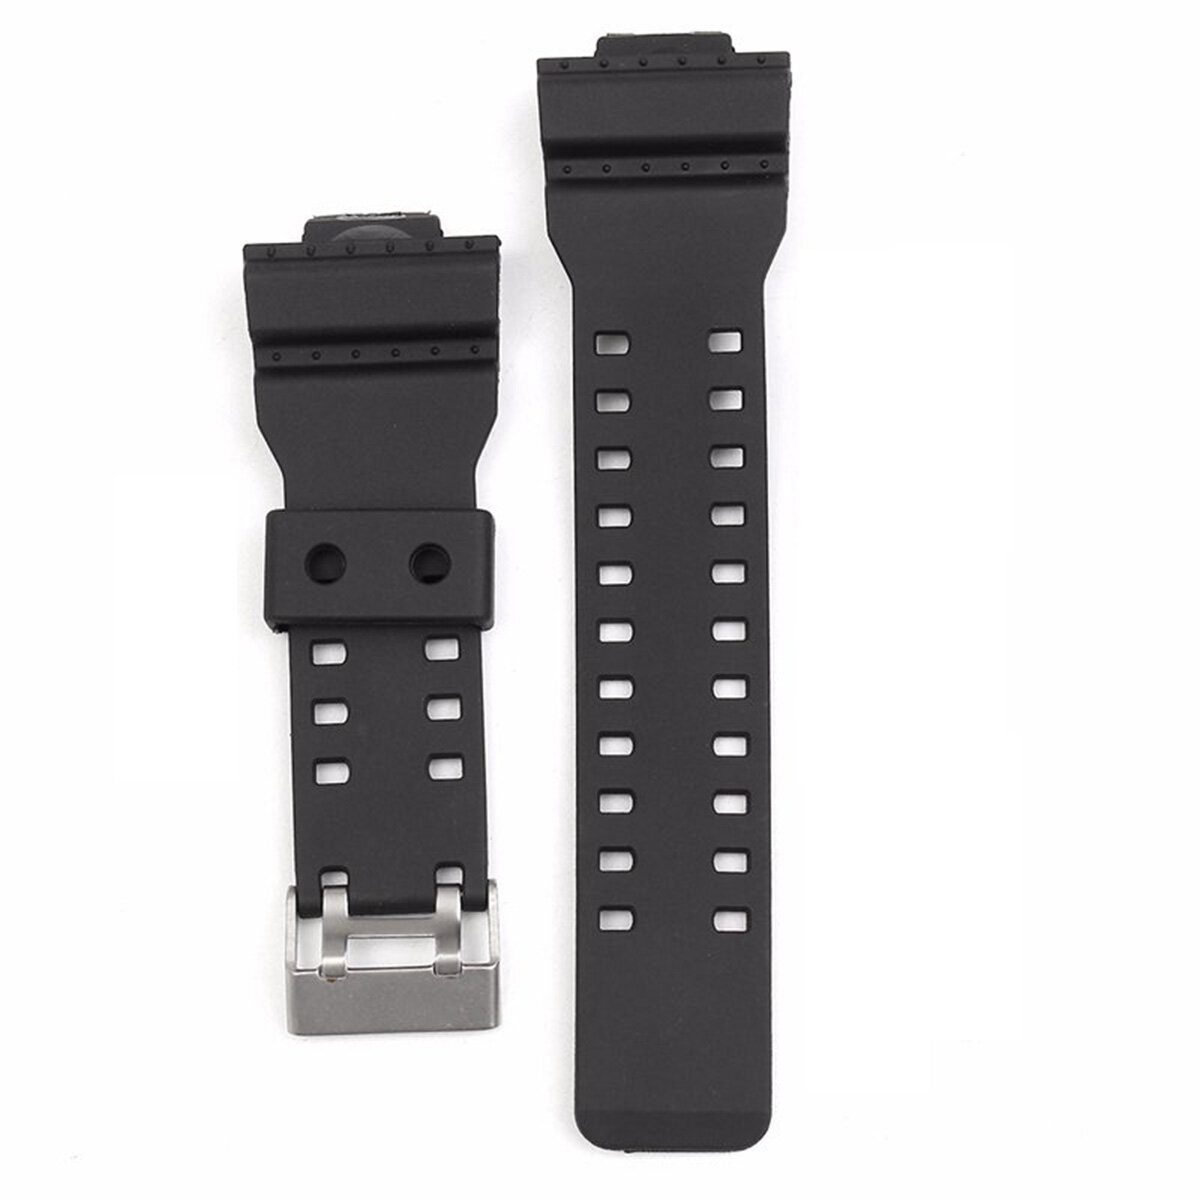 Watch Strap Band With Pins Fits Untuk Casio G Shock 16mm GA-100 G-8900 GW-8900